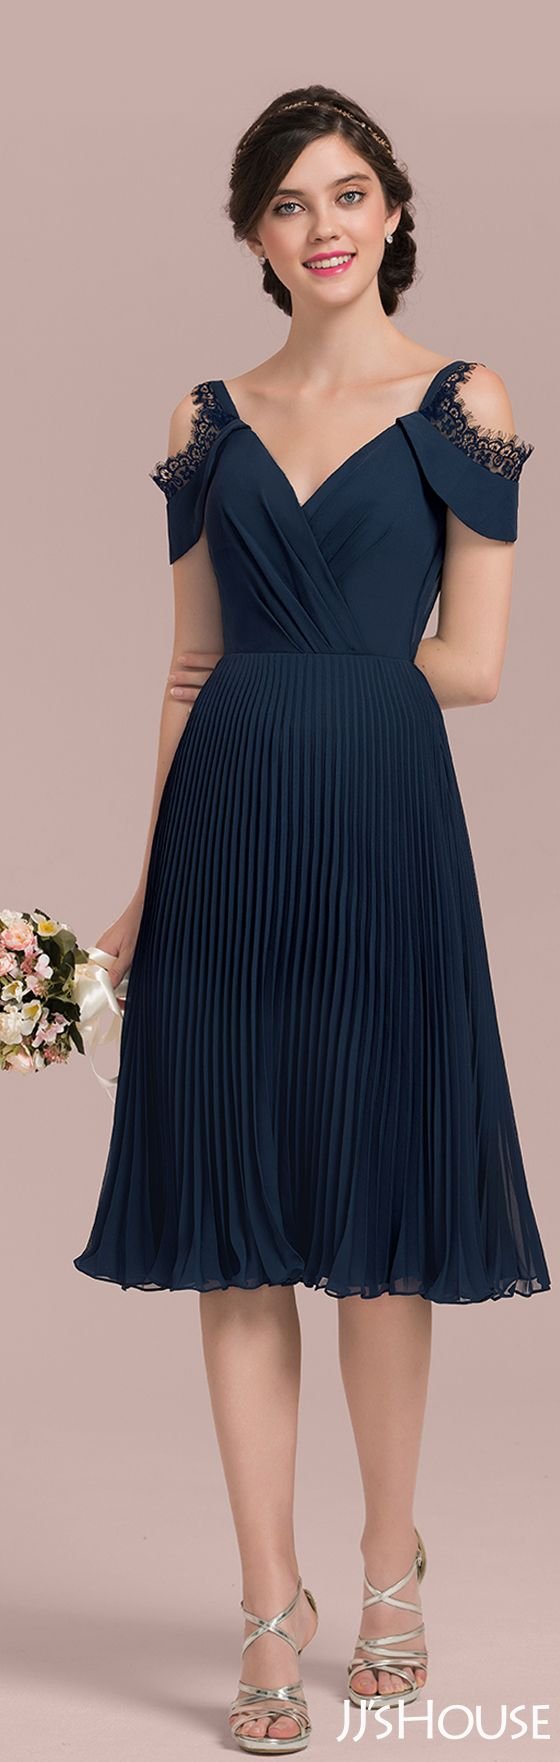 Such an elegant and energetic bridesmaid dress! #JJsHouse #Bridesmaid